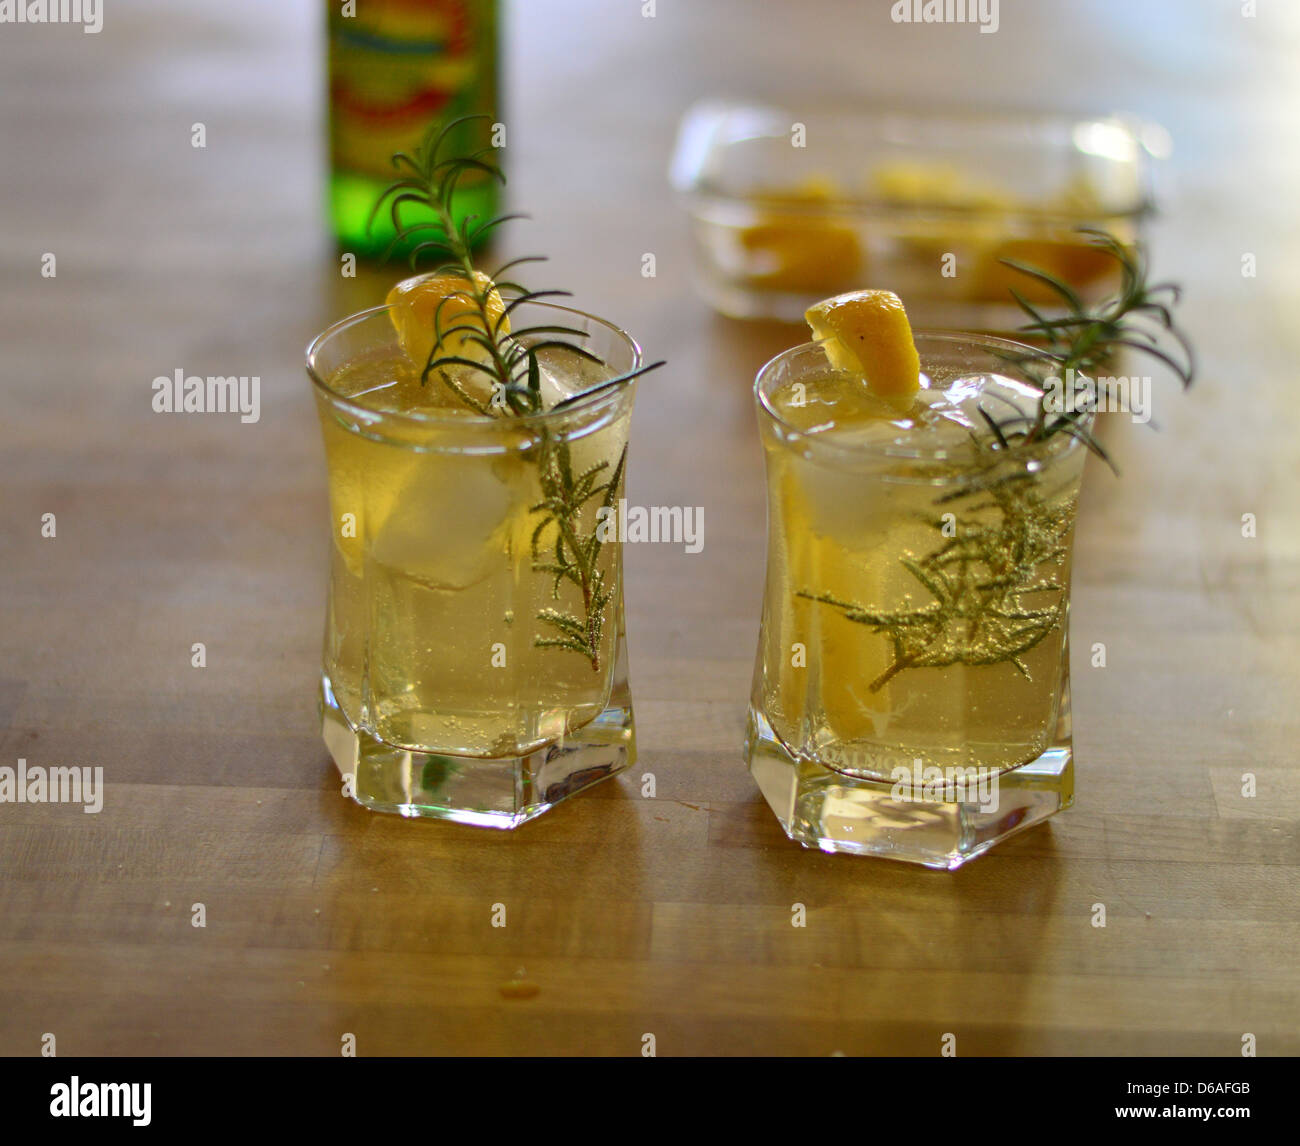 Ginger beer and gin cocktails with sprigs of fresh rosemary and cubes lemons as garnishes Stock Photo